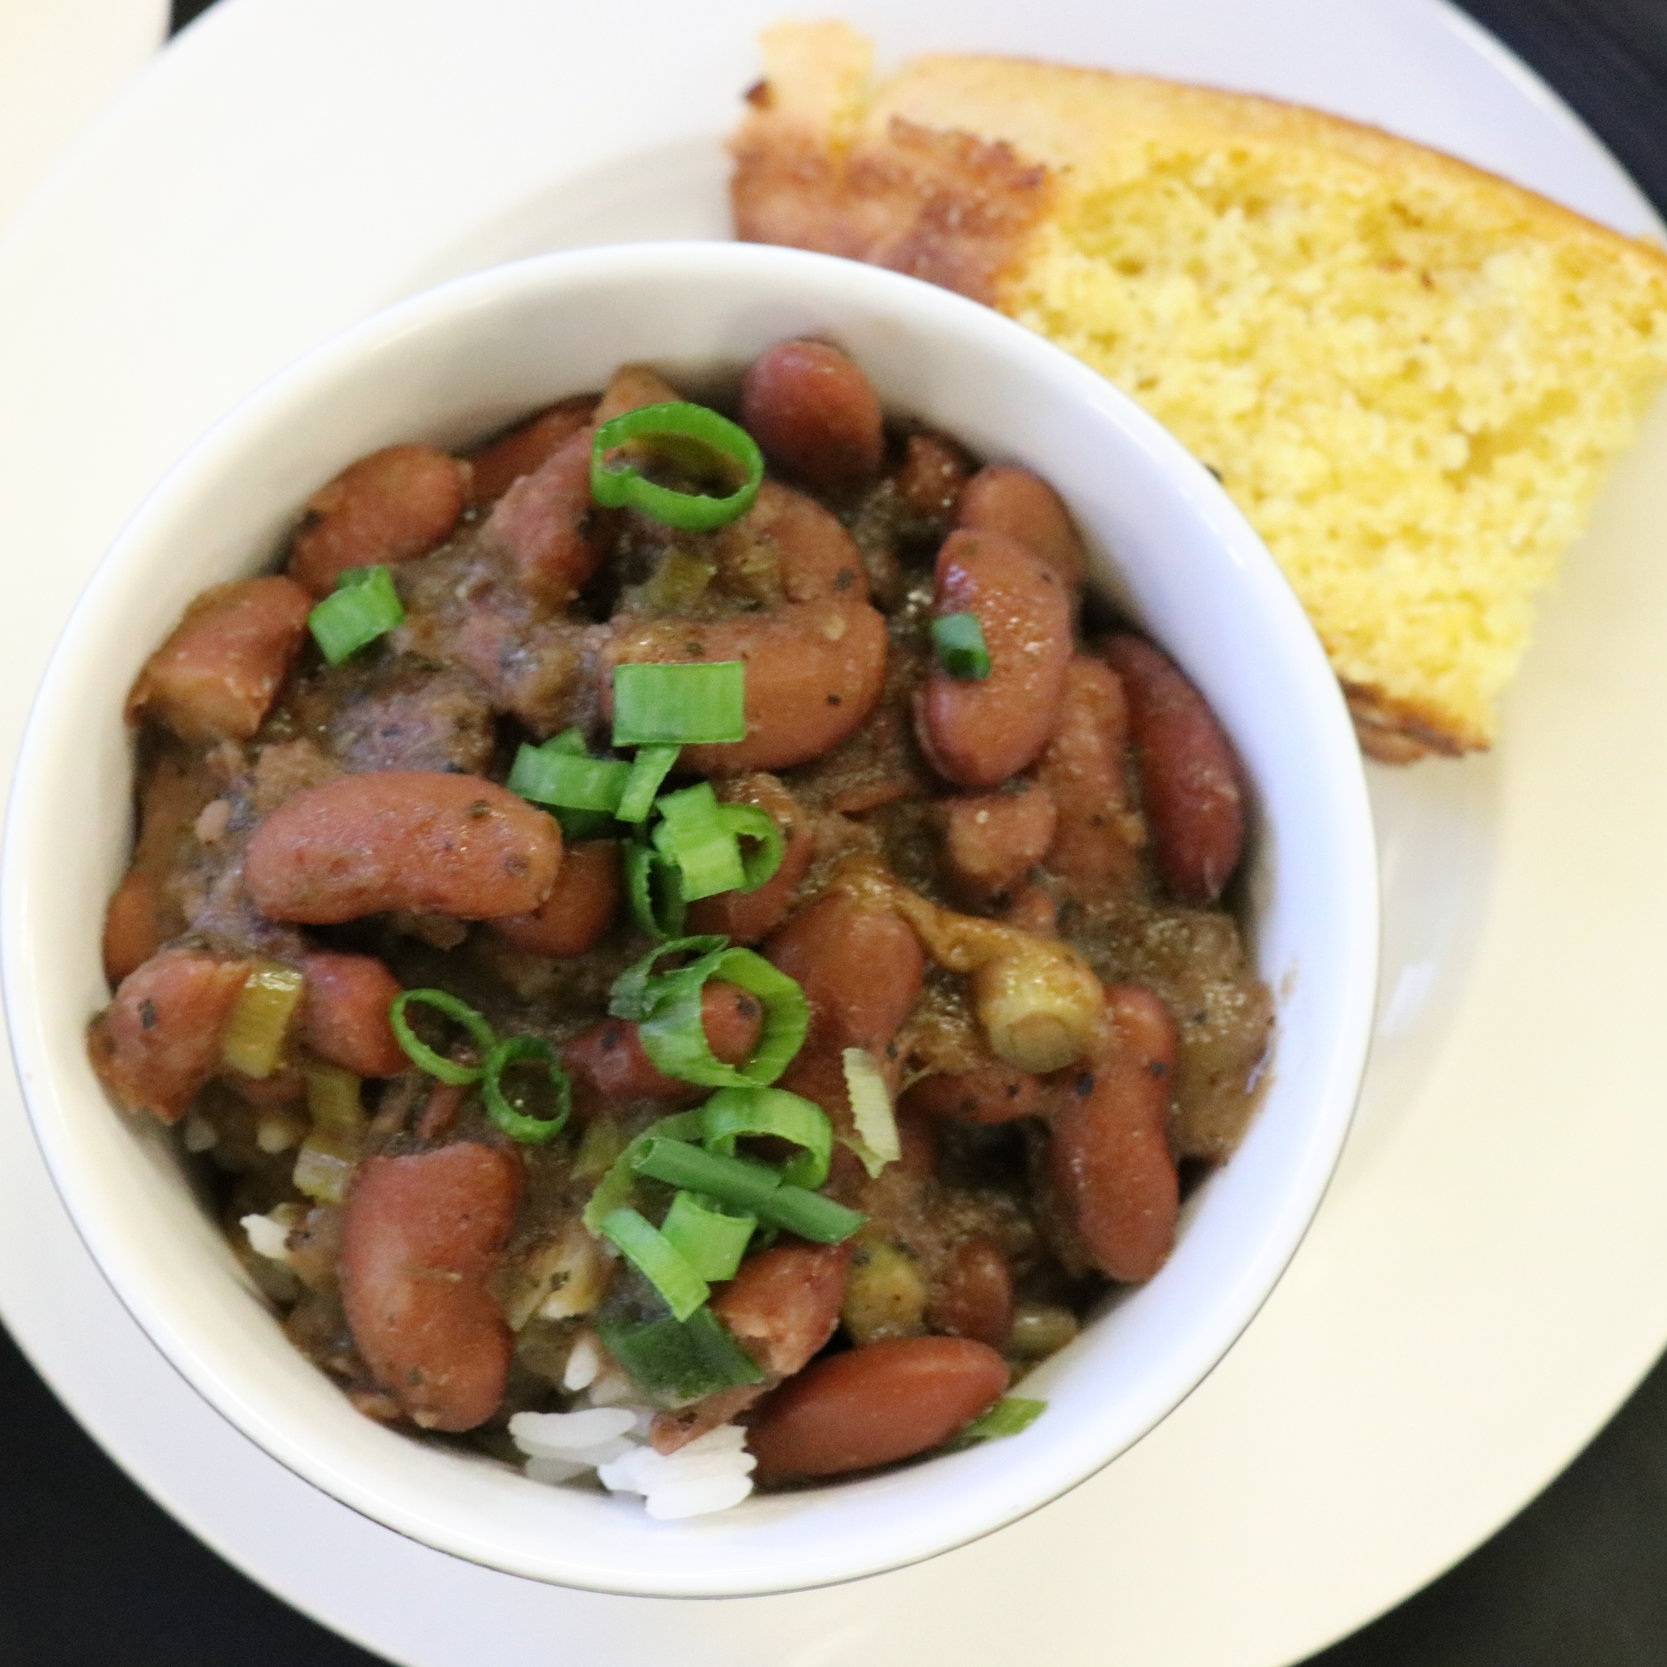 Red Beans and Rice with Cornbread, by Pableaux Johnson - New Orleans-based writer, photographer and author models hospitality and community as host of